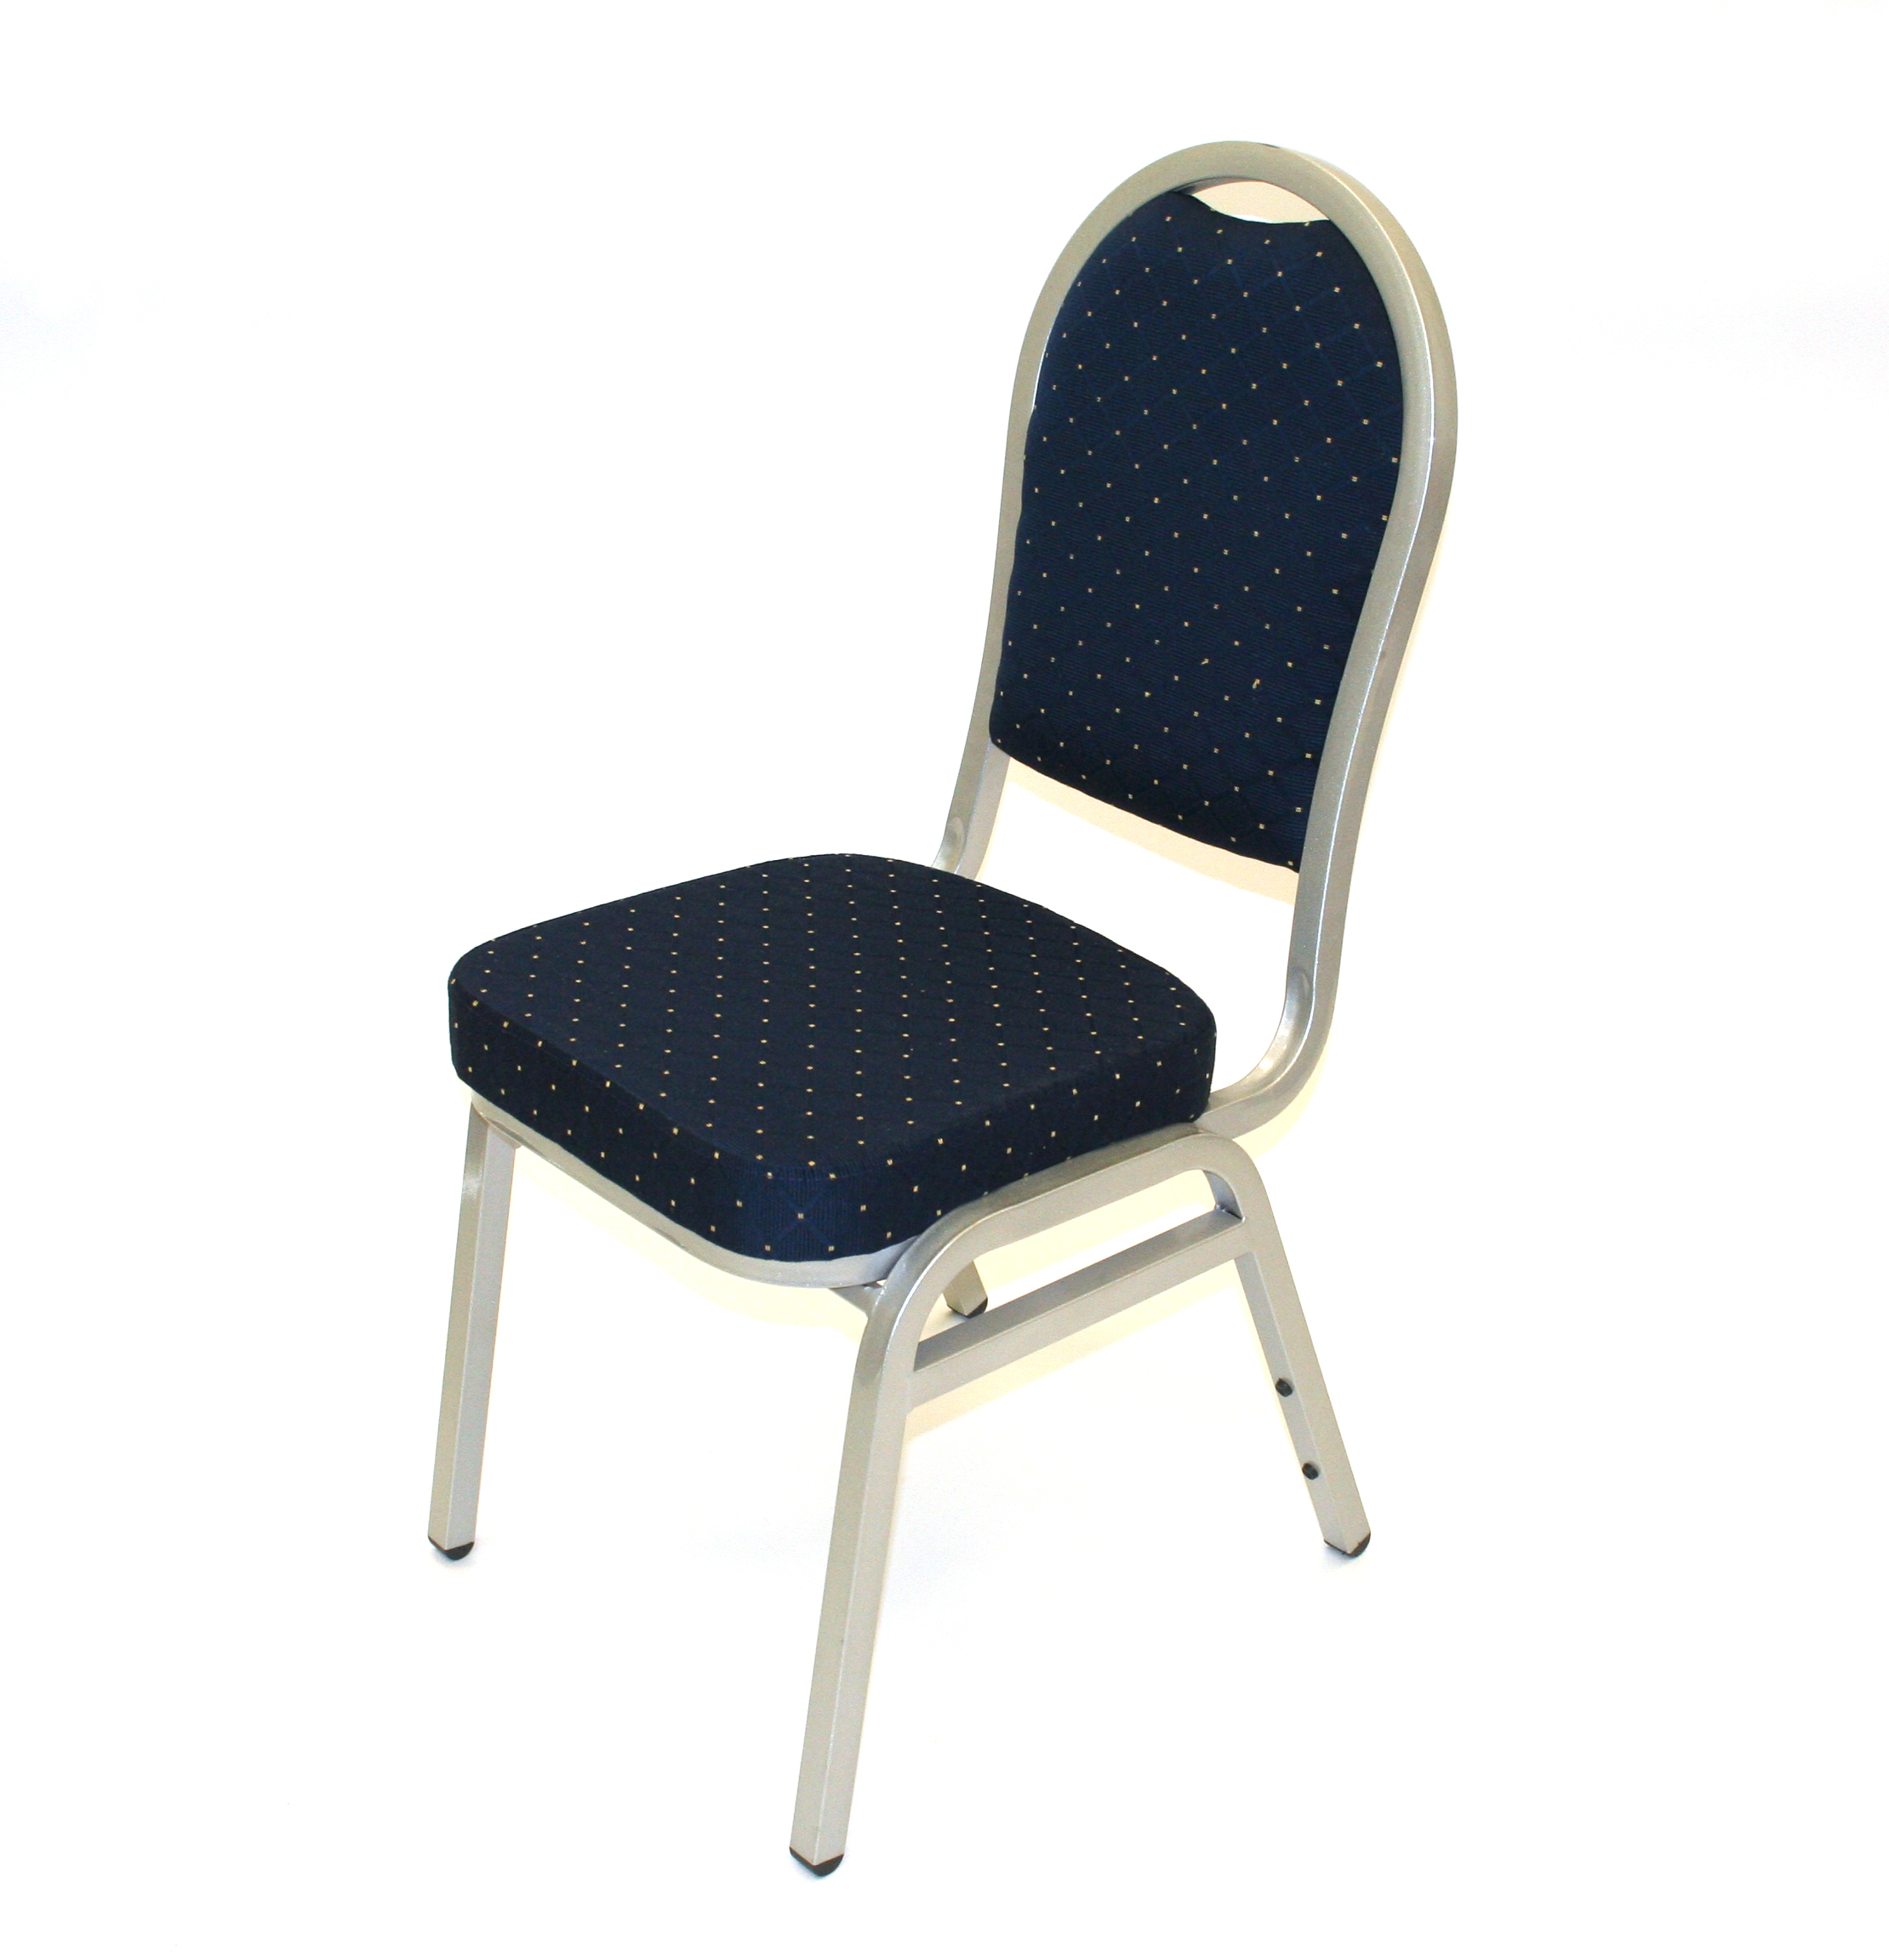 Premium Blue & Silver Banqueting Chairs - BE Furniture Sales